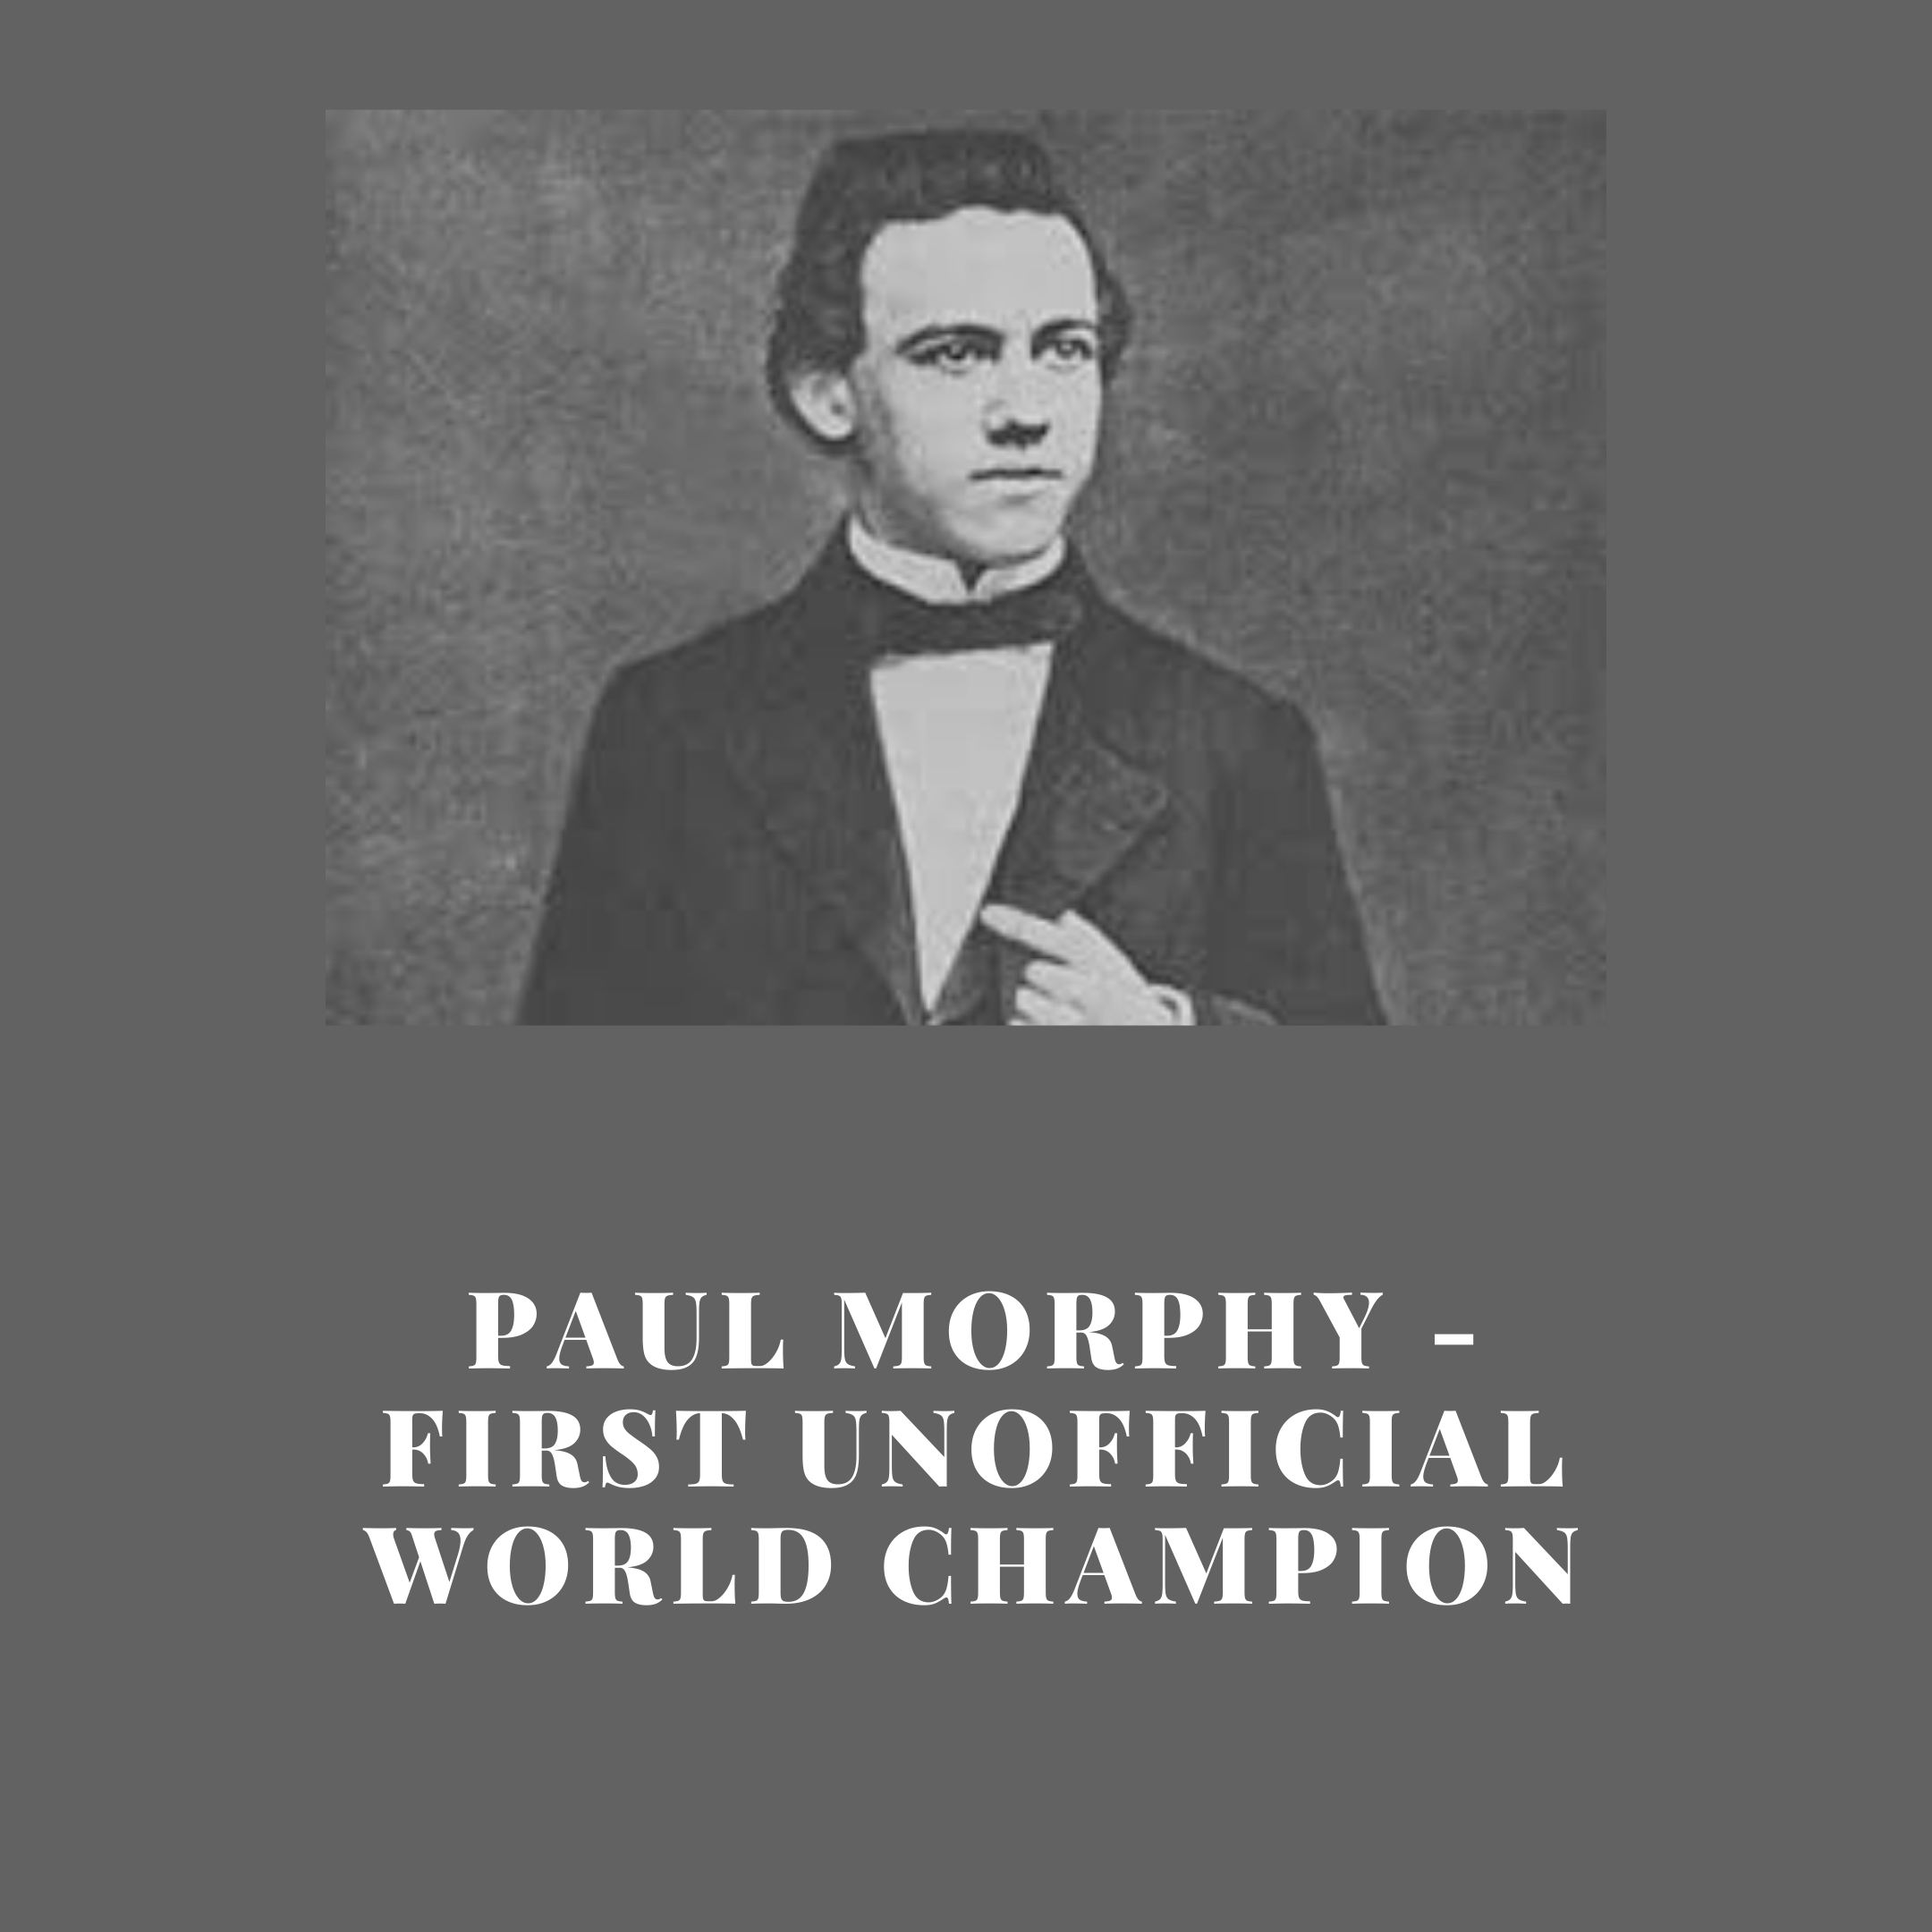 Paul Morphy – First Unofficial World Champion